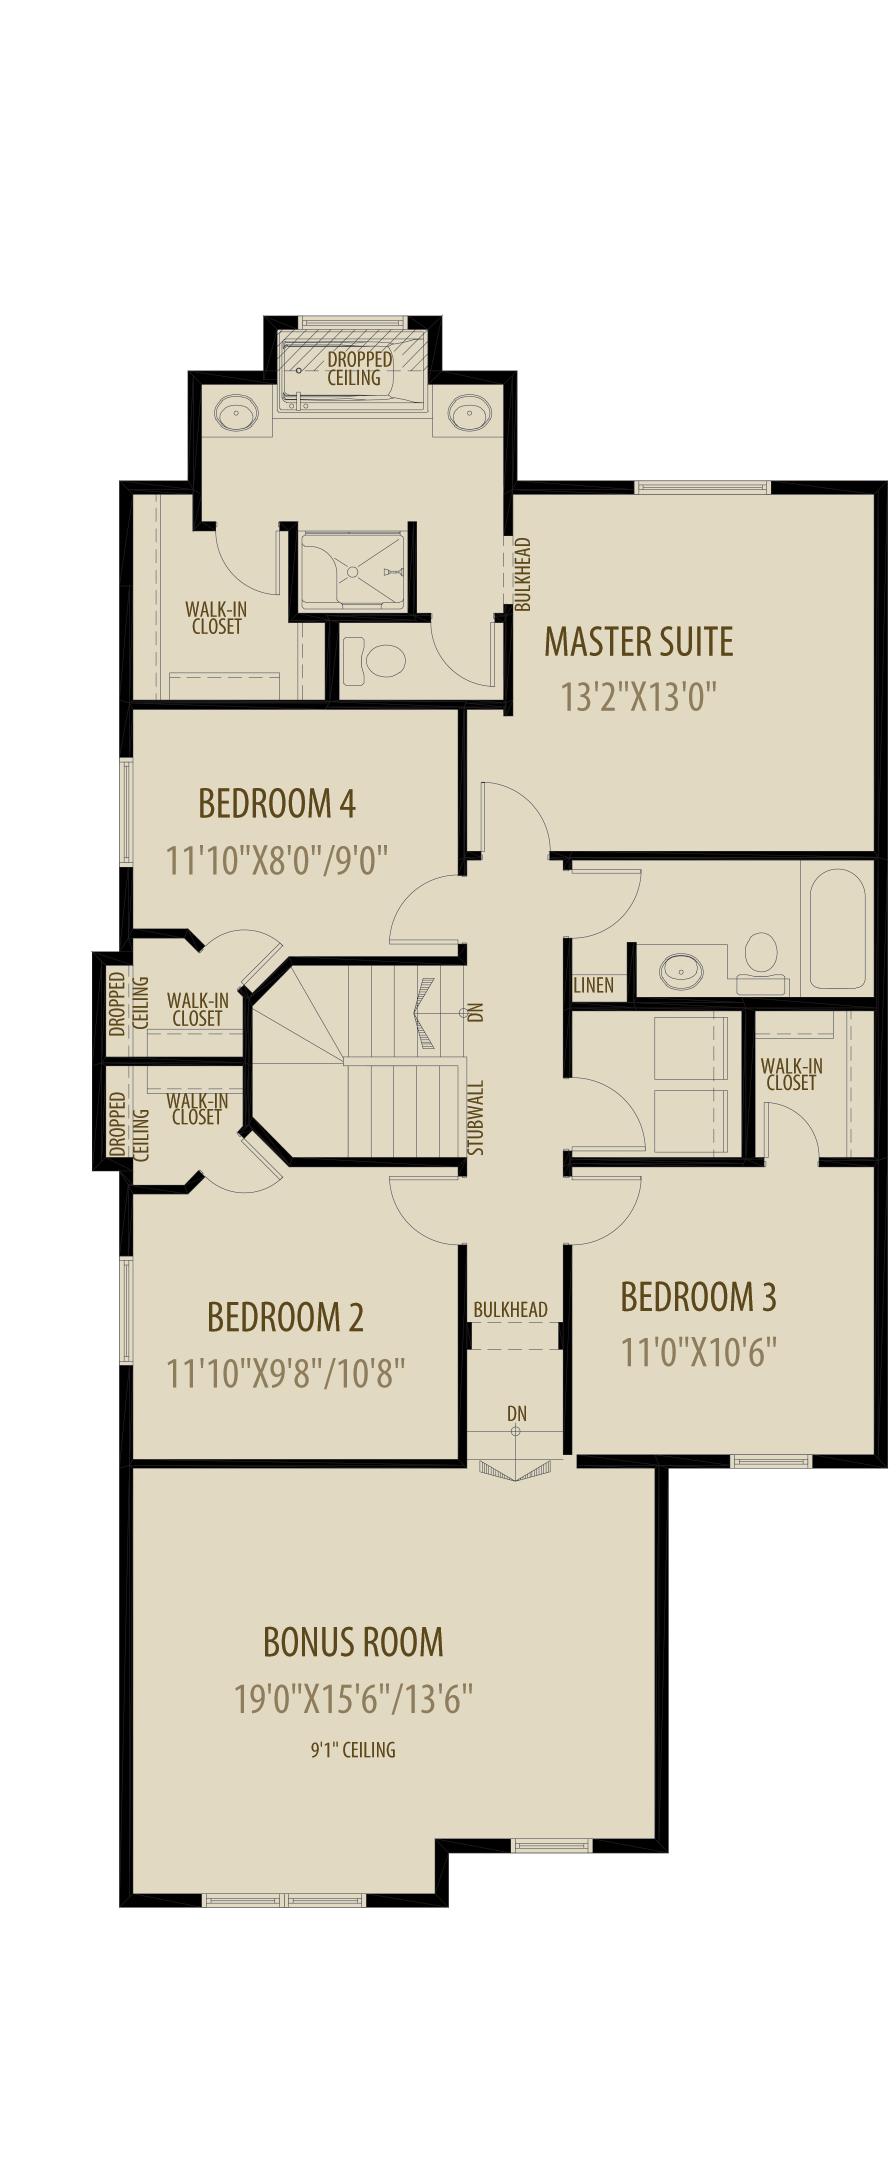 4Th Bedroom W  Revised Ensuite Adds 61Sq Ft